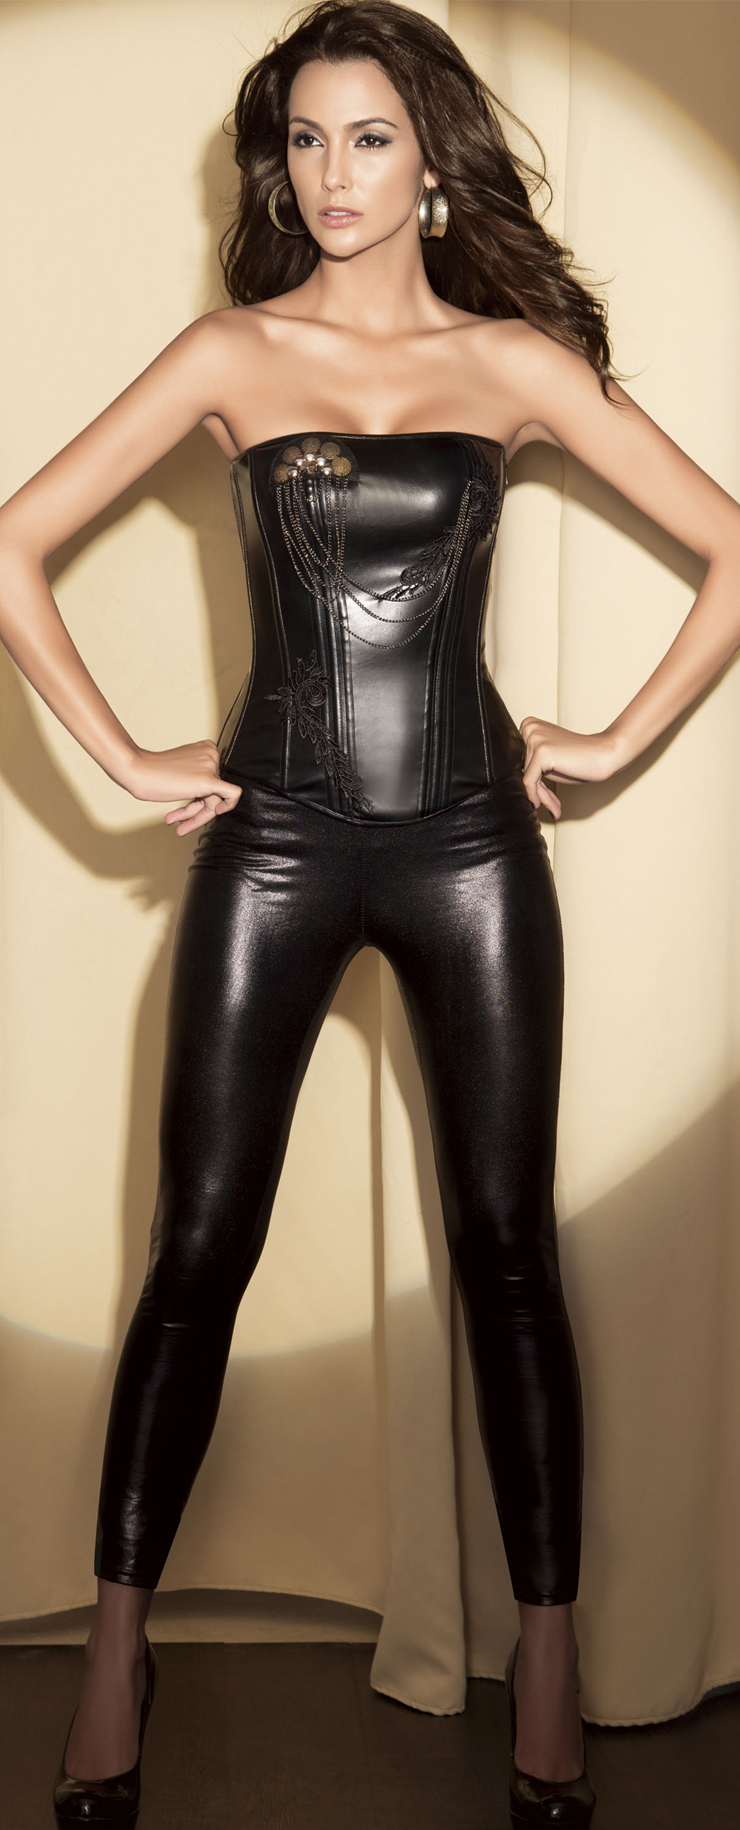 All fantasy girls in leather corsets have thought